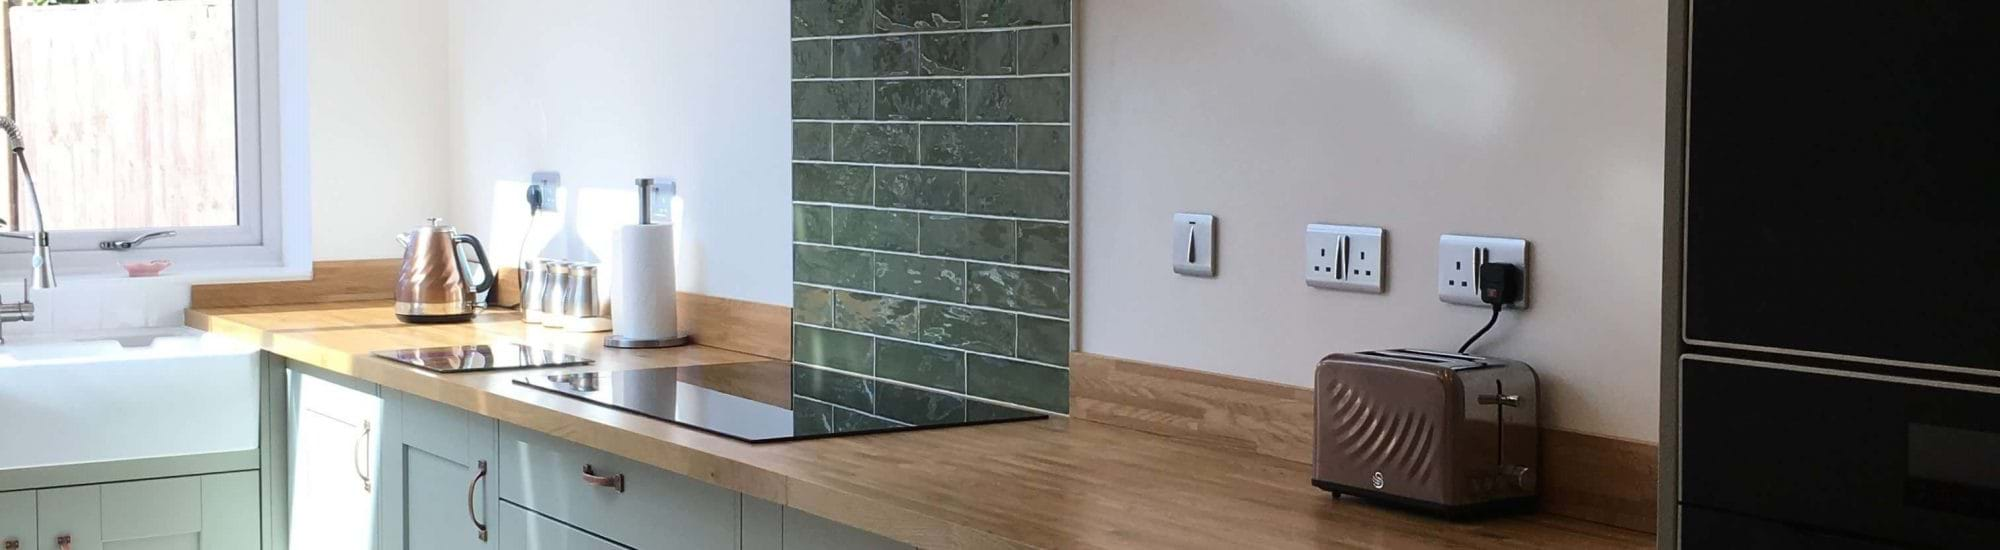 Casa Austin sage green kitchen image in a customers home